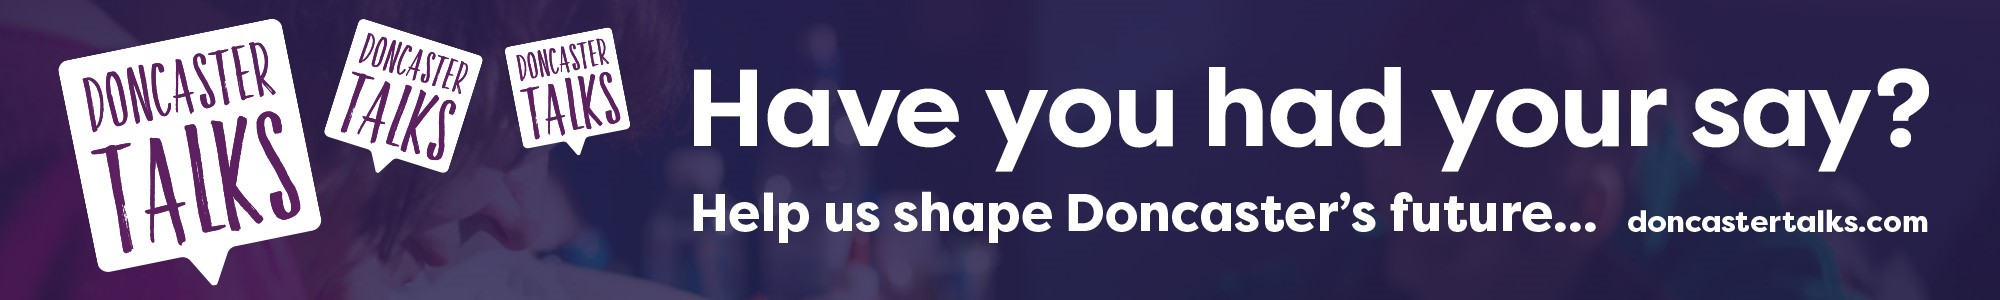 Doncaster Talks - Have your say